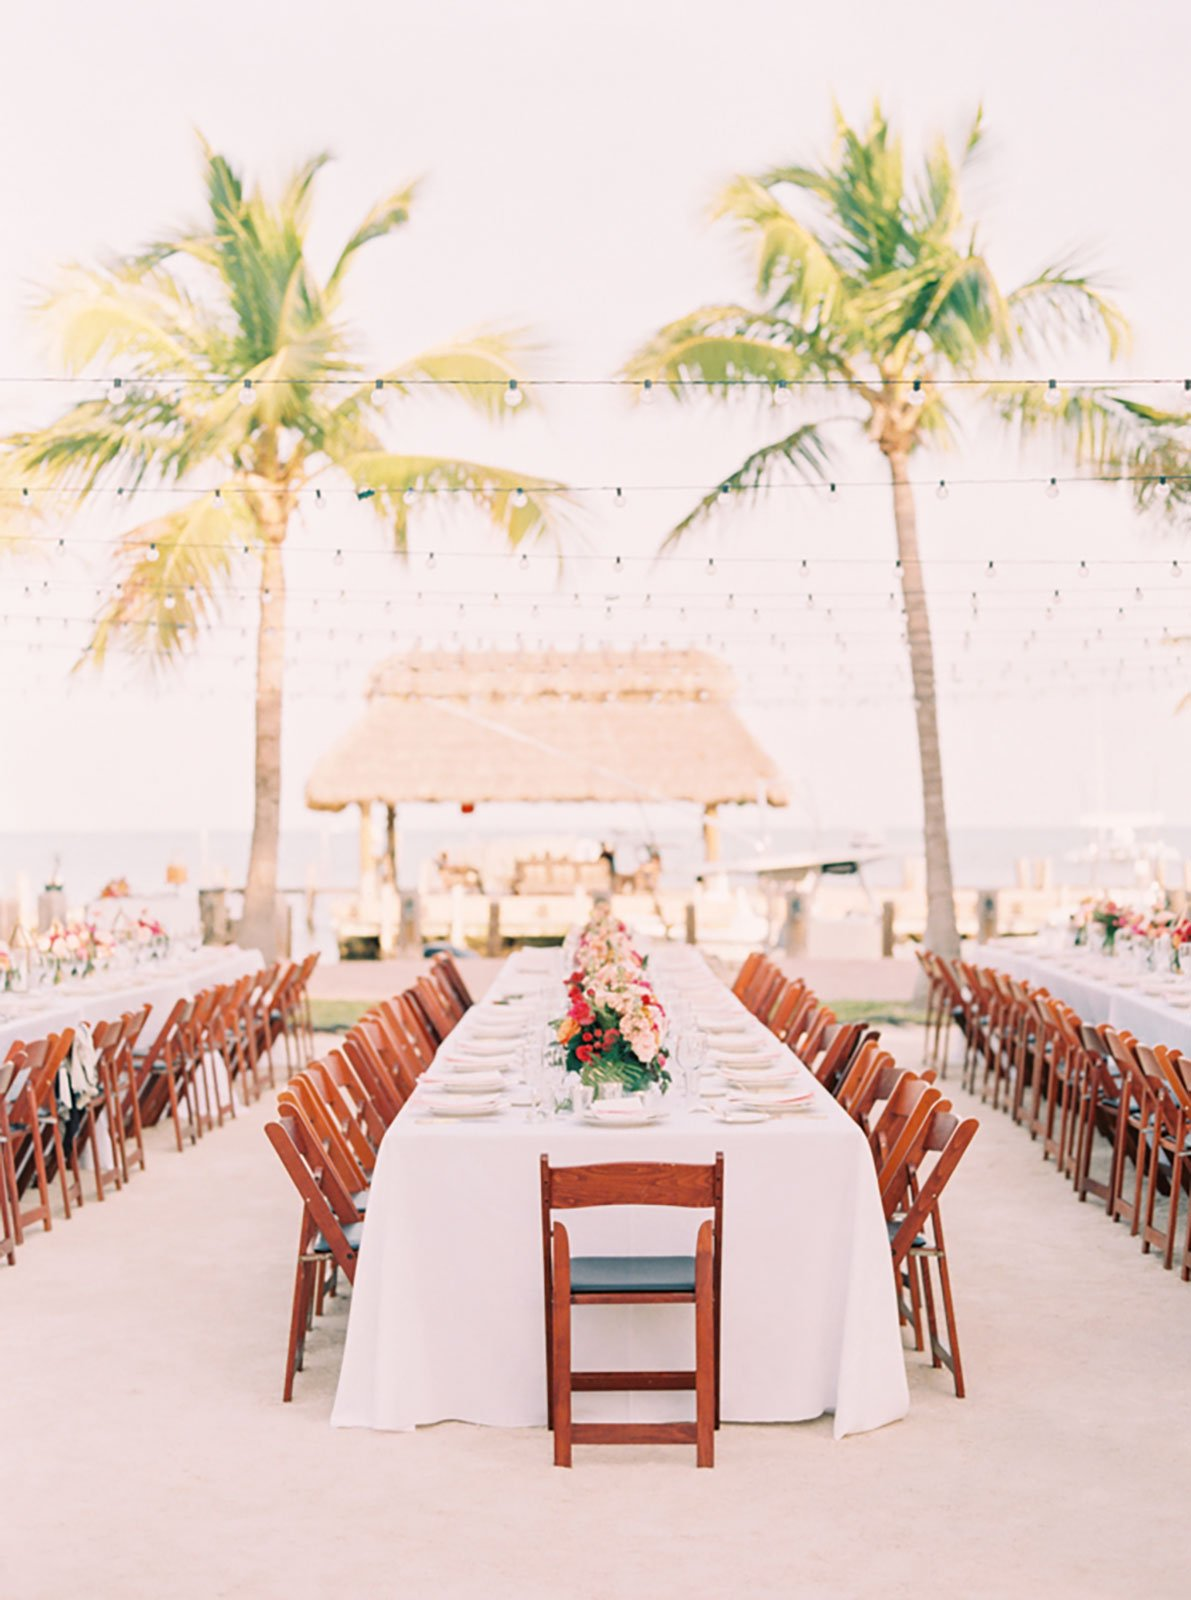 Bright waterfront wedding reception centerpieces gave the table settings a pop of color at this destination wedding